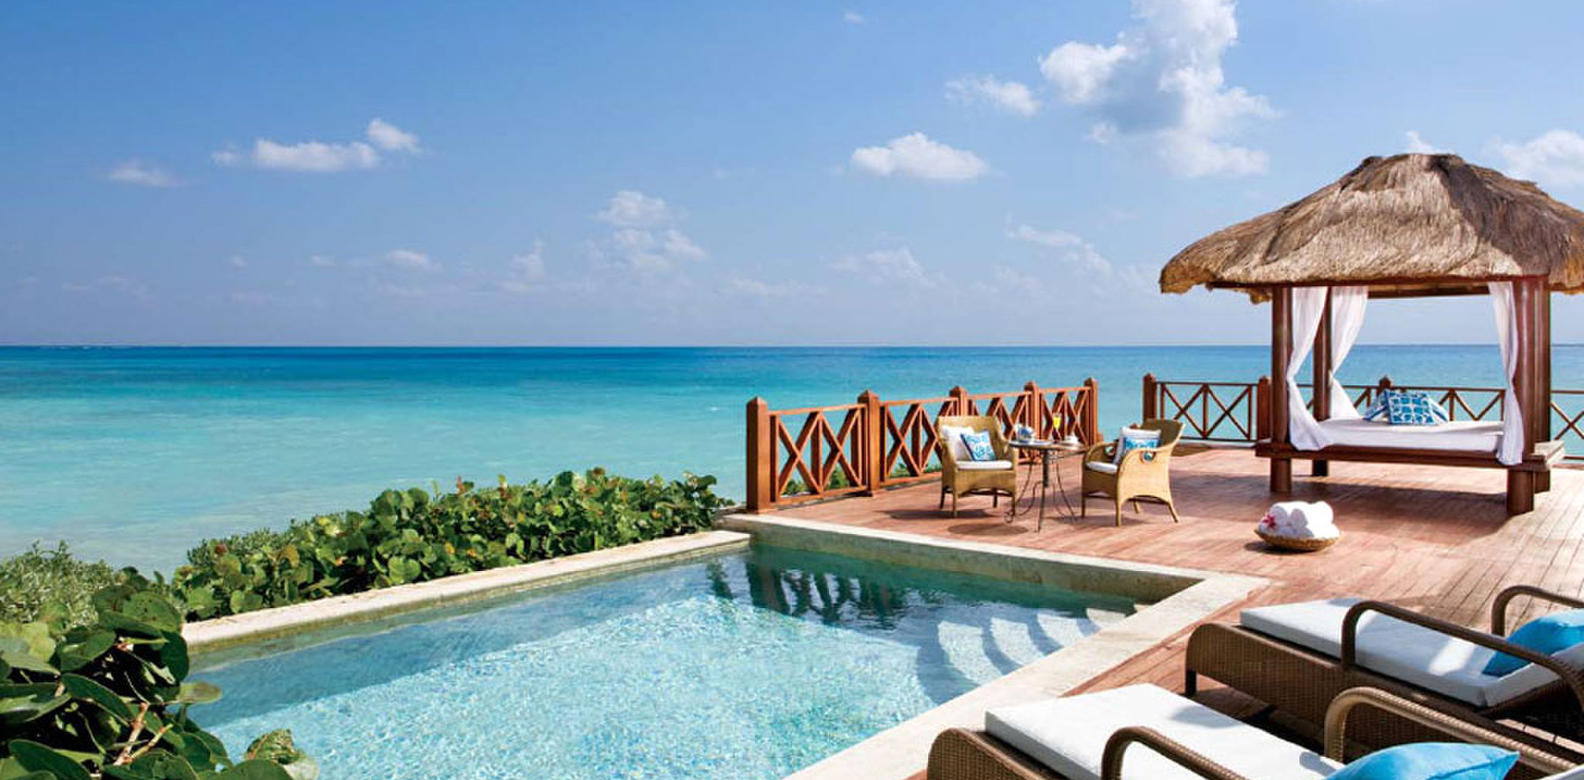 The 10 Most Stunning Beach Resorts You Have To See